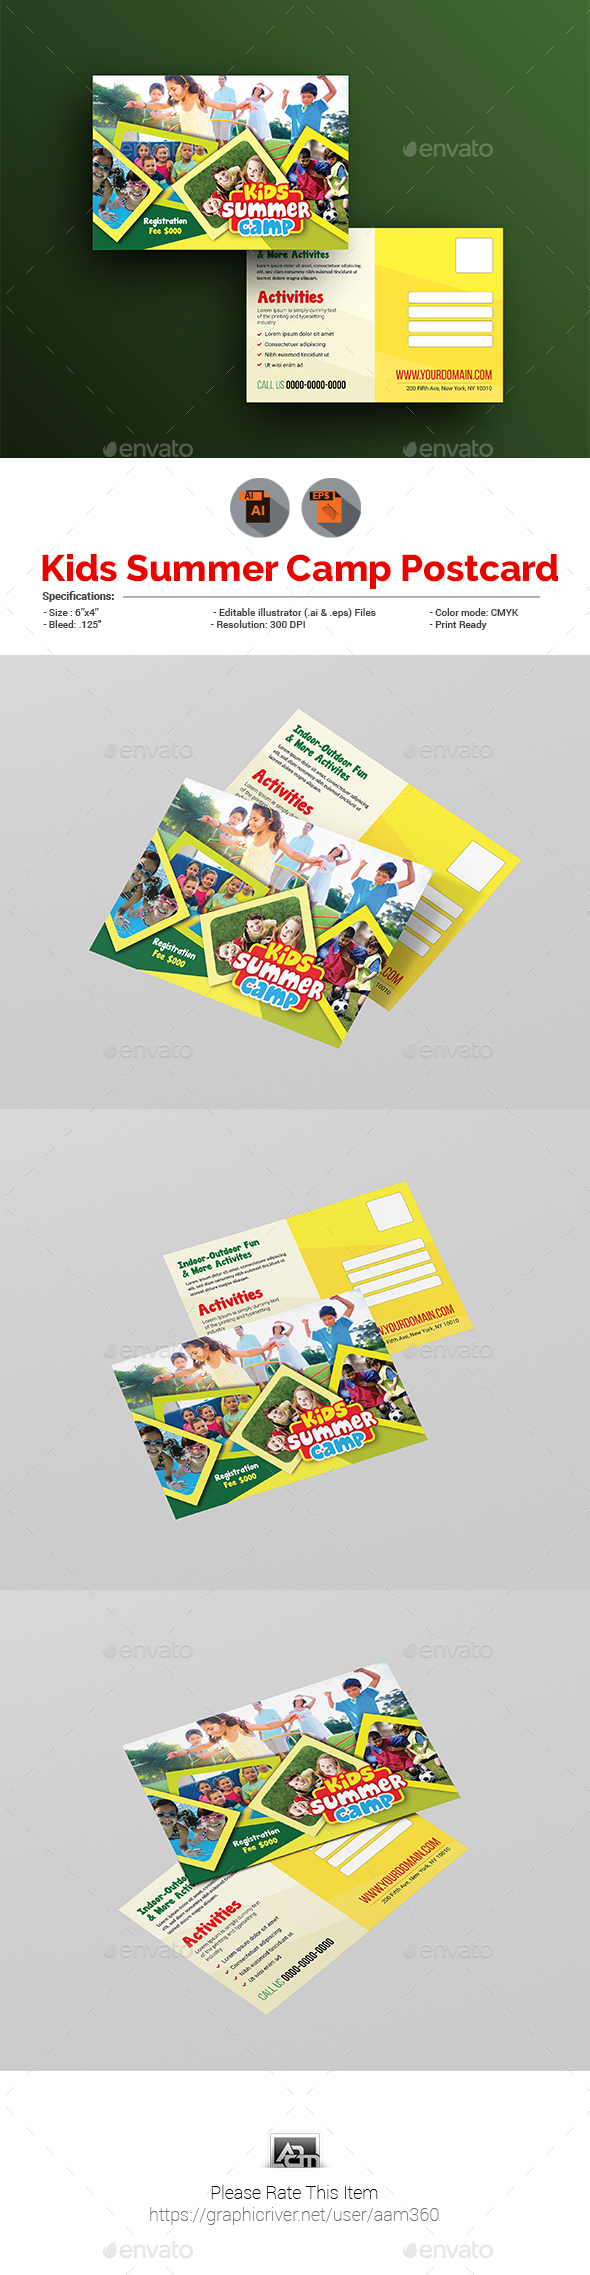 Kids Summer Camp Postcard - Cards & Invites Print Templates